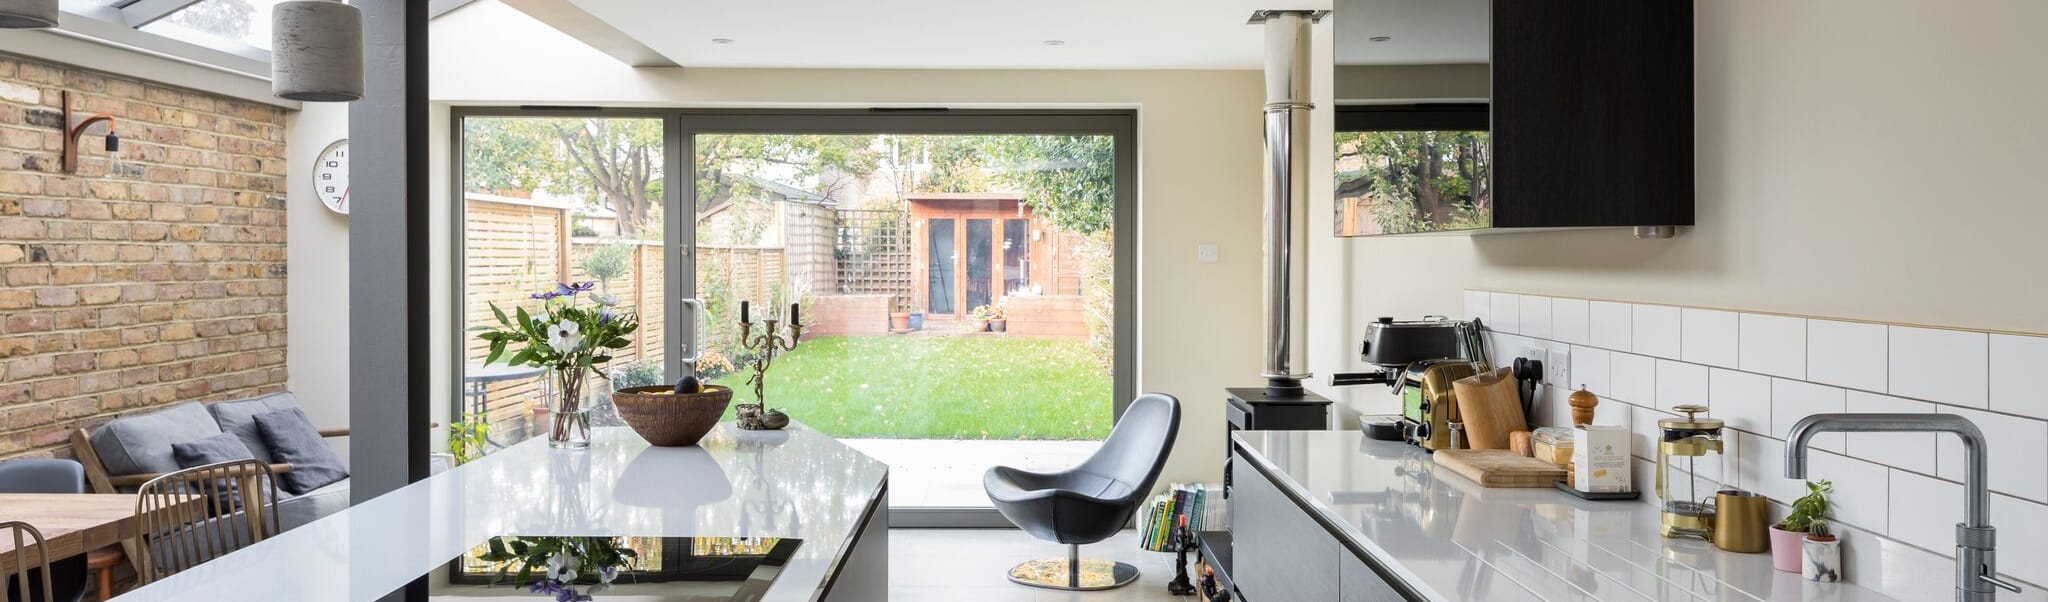 Resi Architects in London